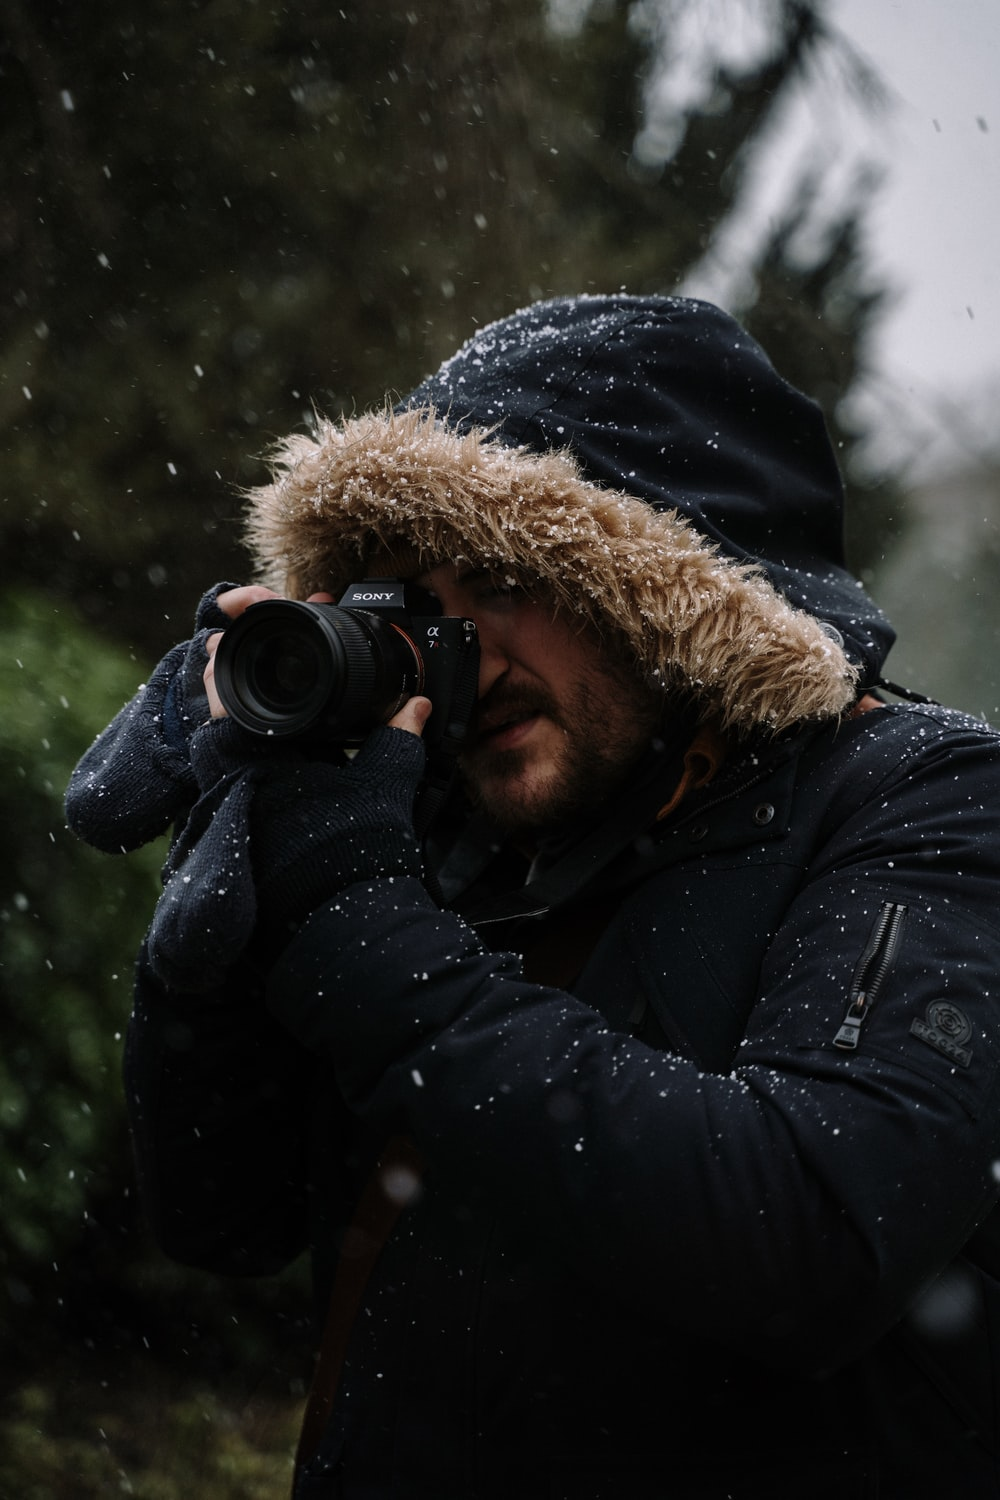 person in black and brown parka jacket holding black dslr camera